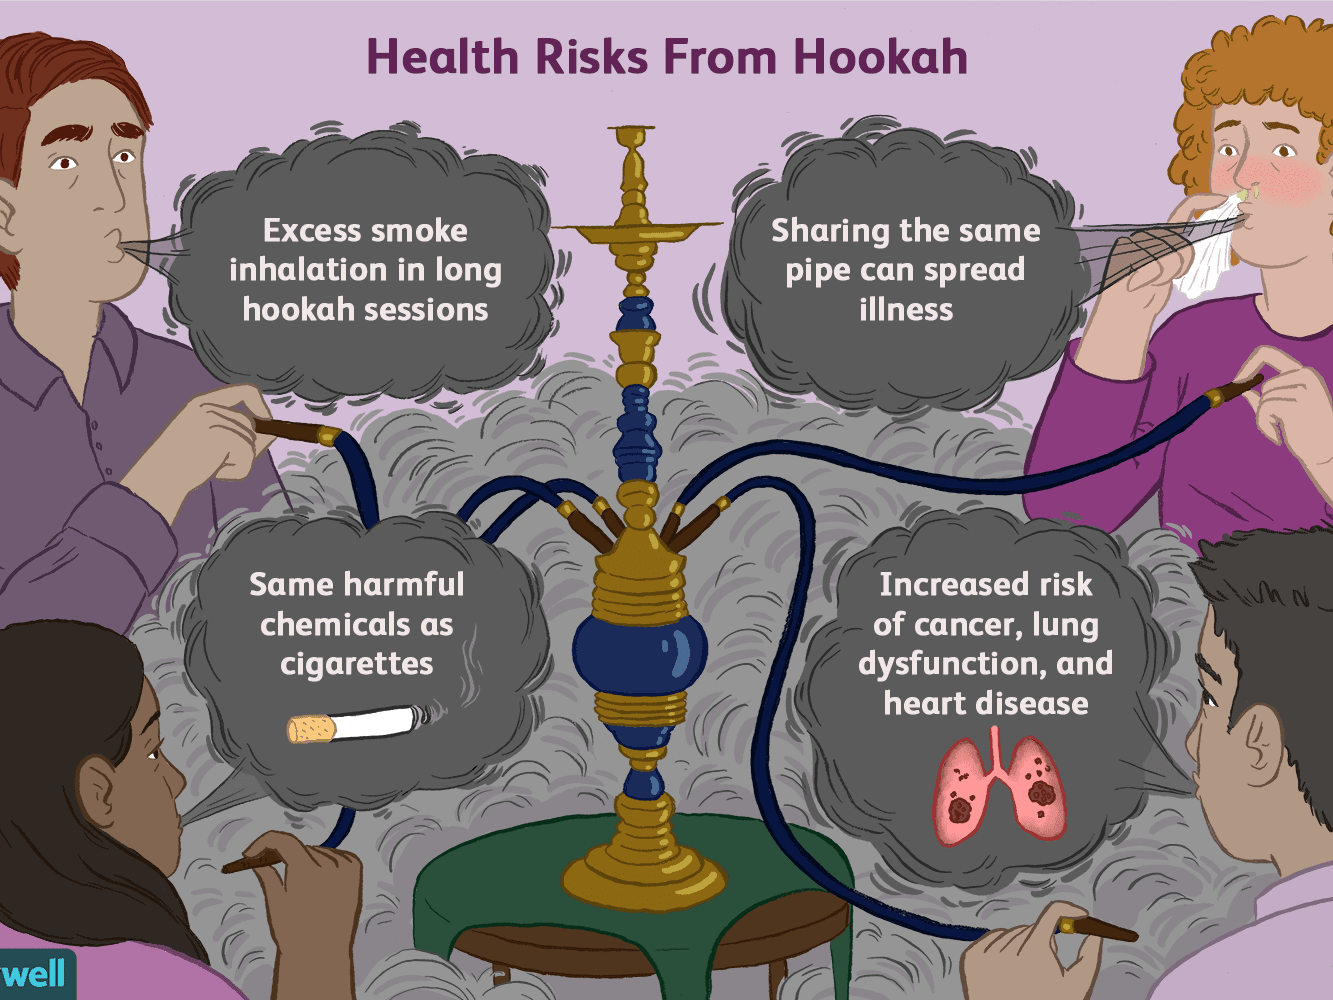 Hookah Smoking and Its Risks